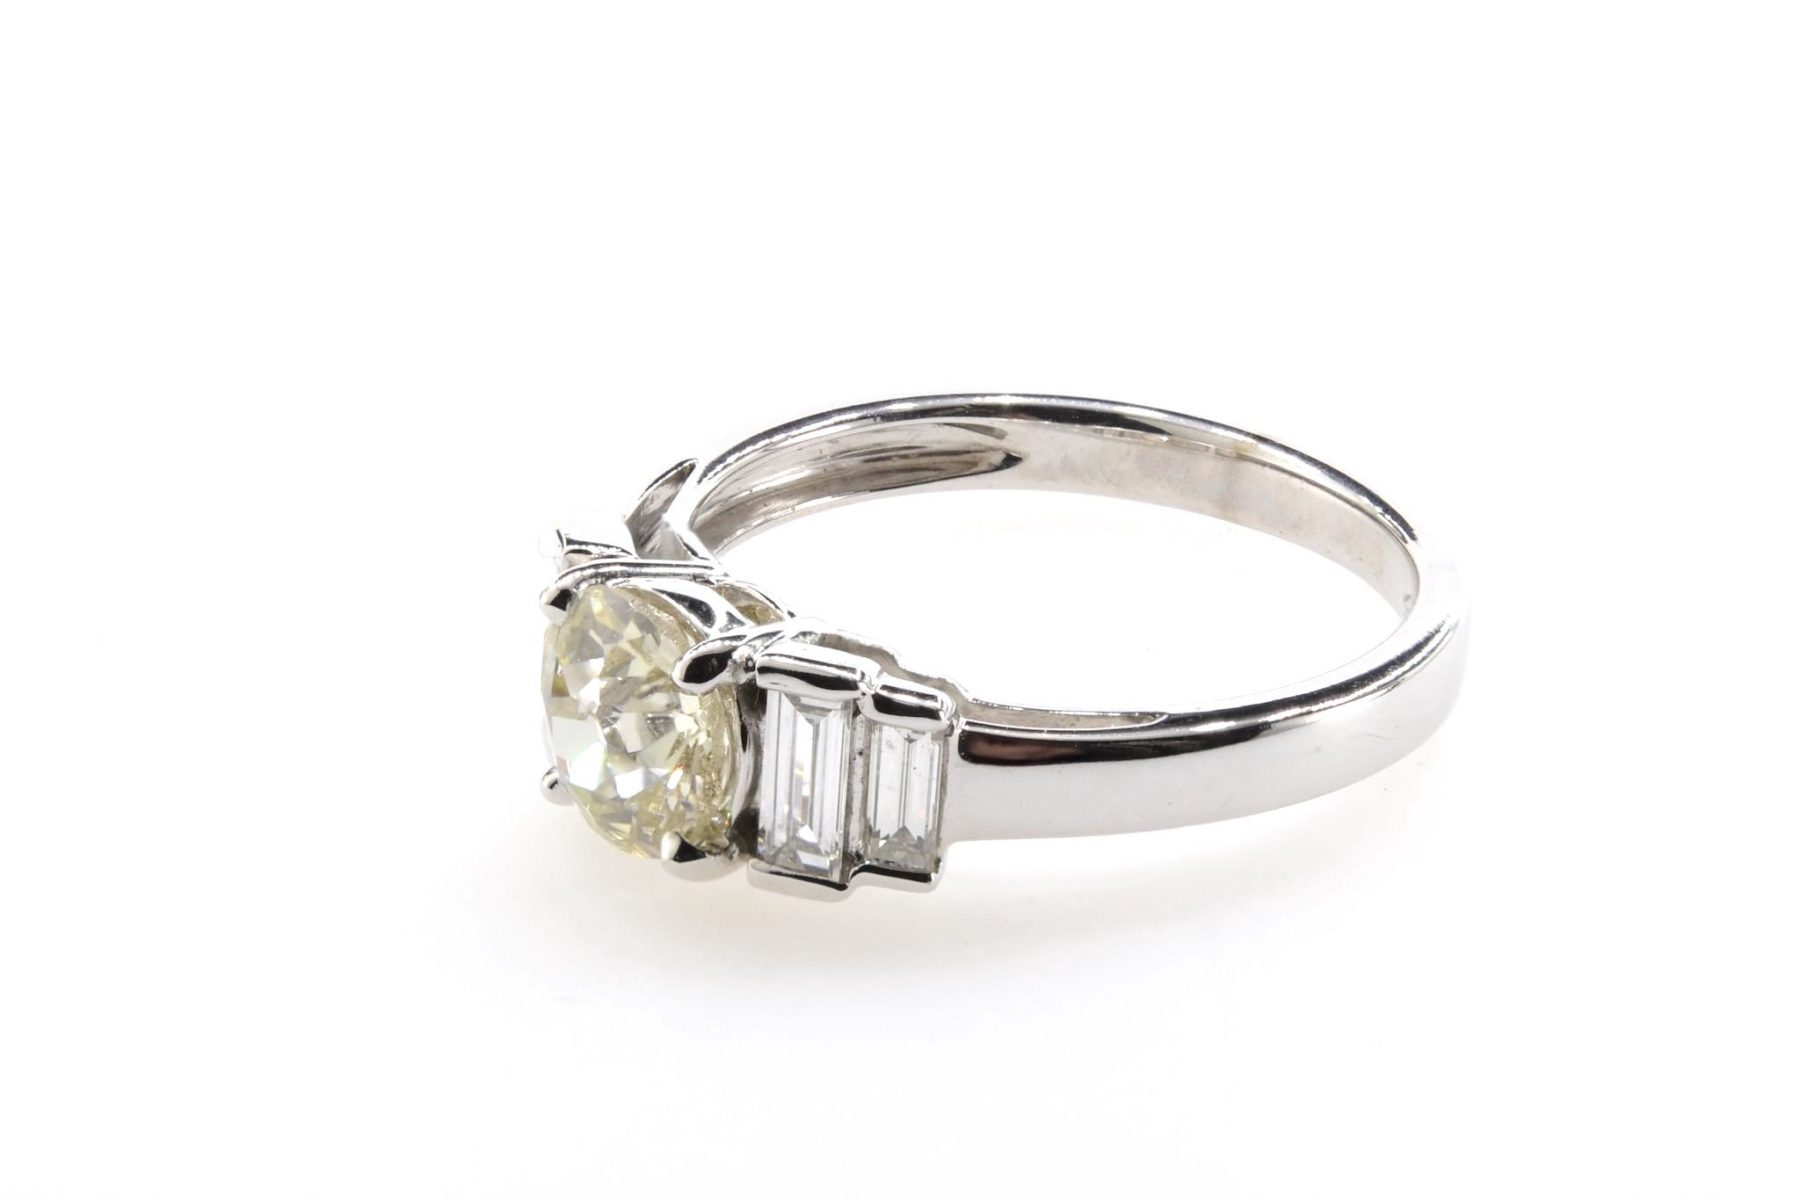 bague solitaire diamants baguettes en or blanc 18k